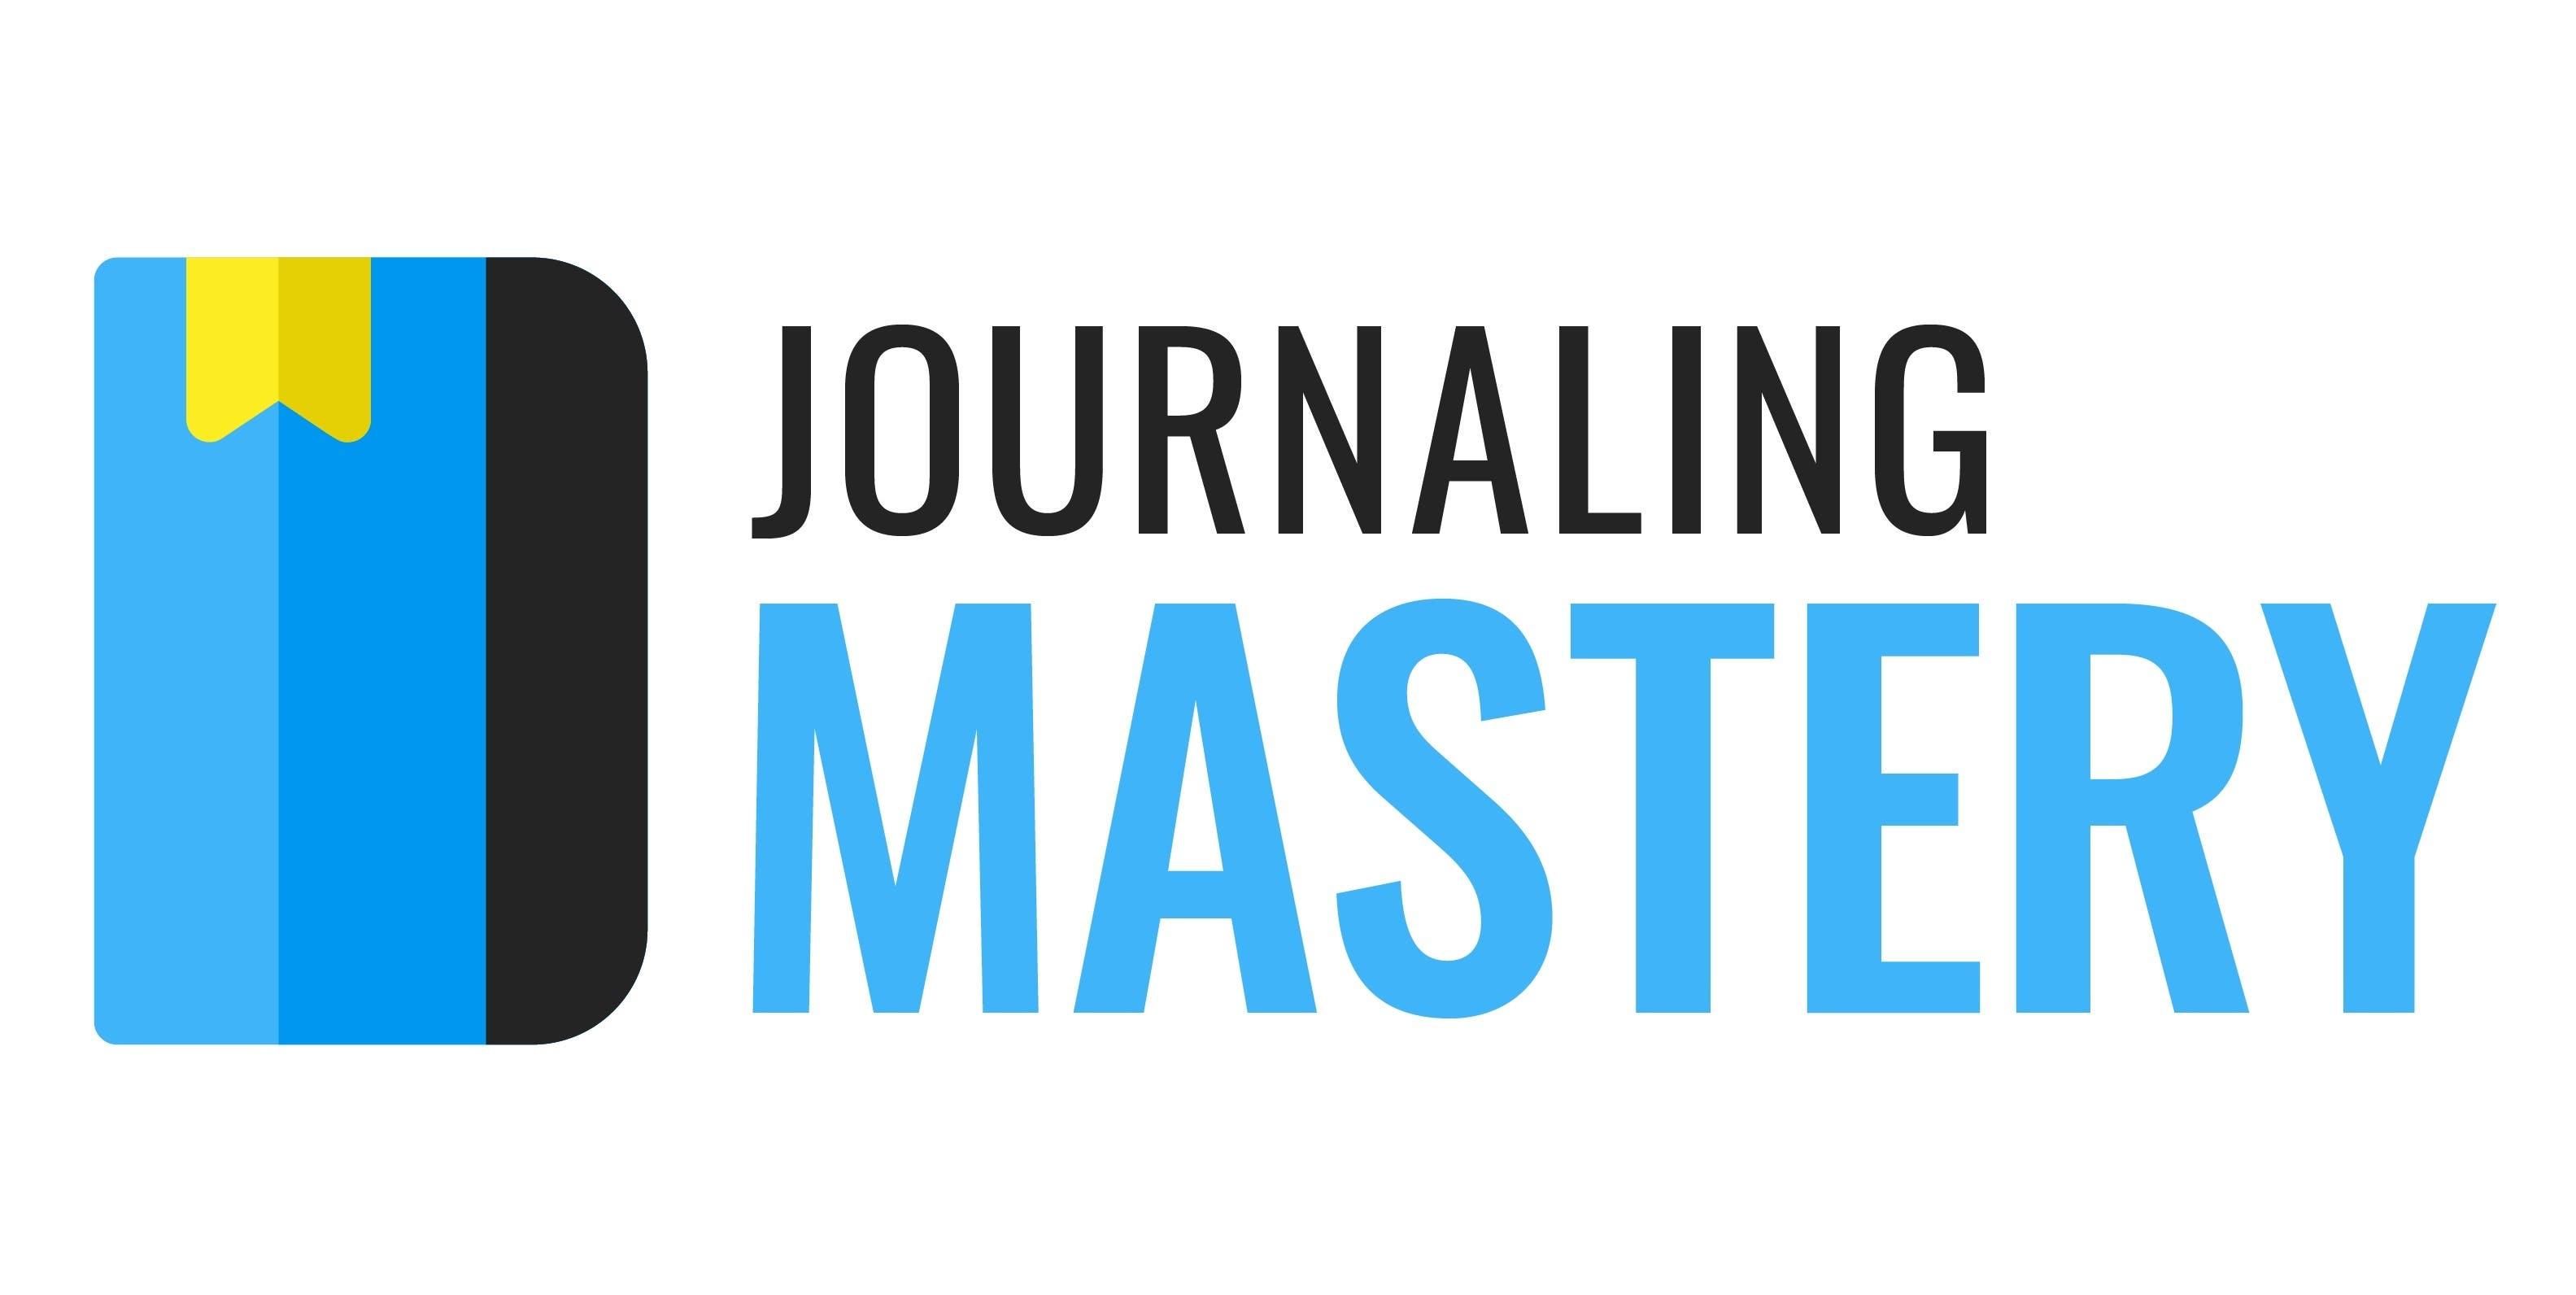 Journaling Mastery: Become Your Best Self